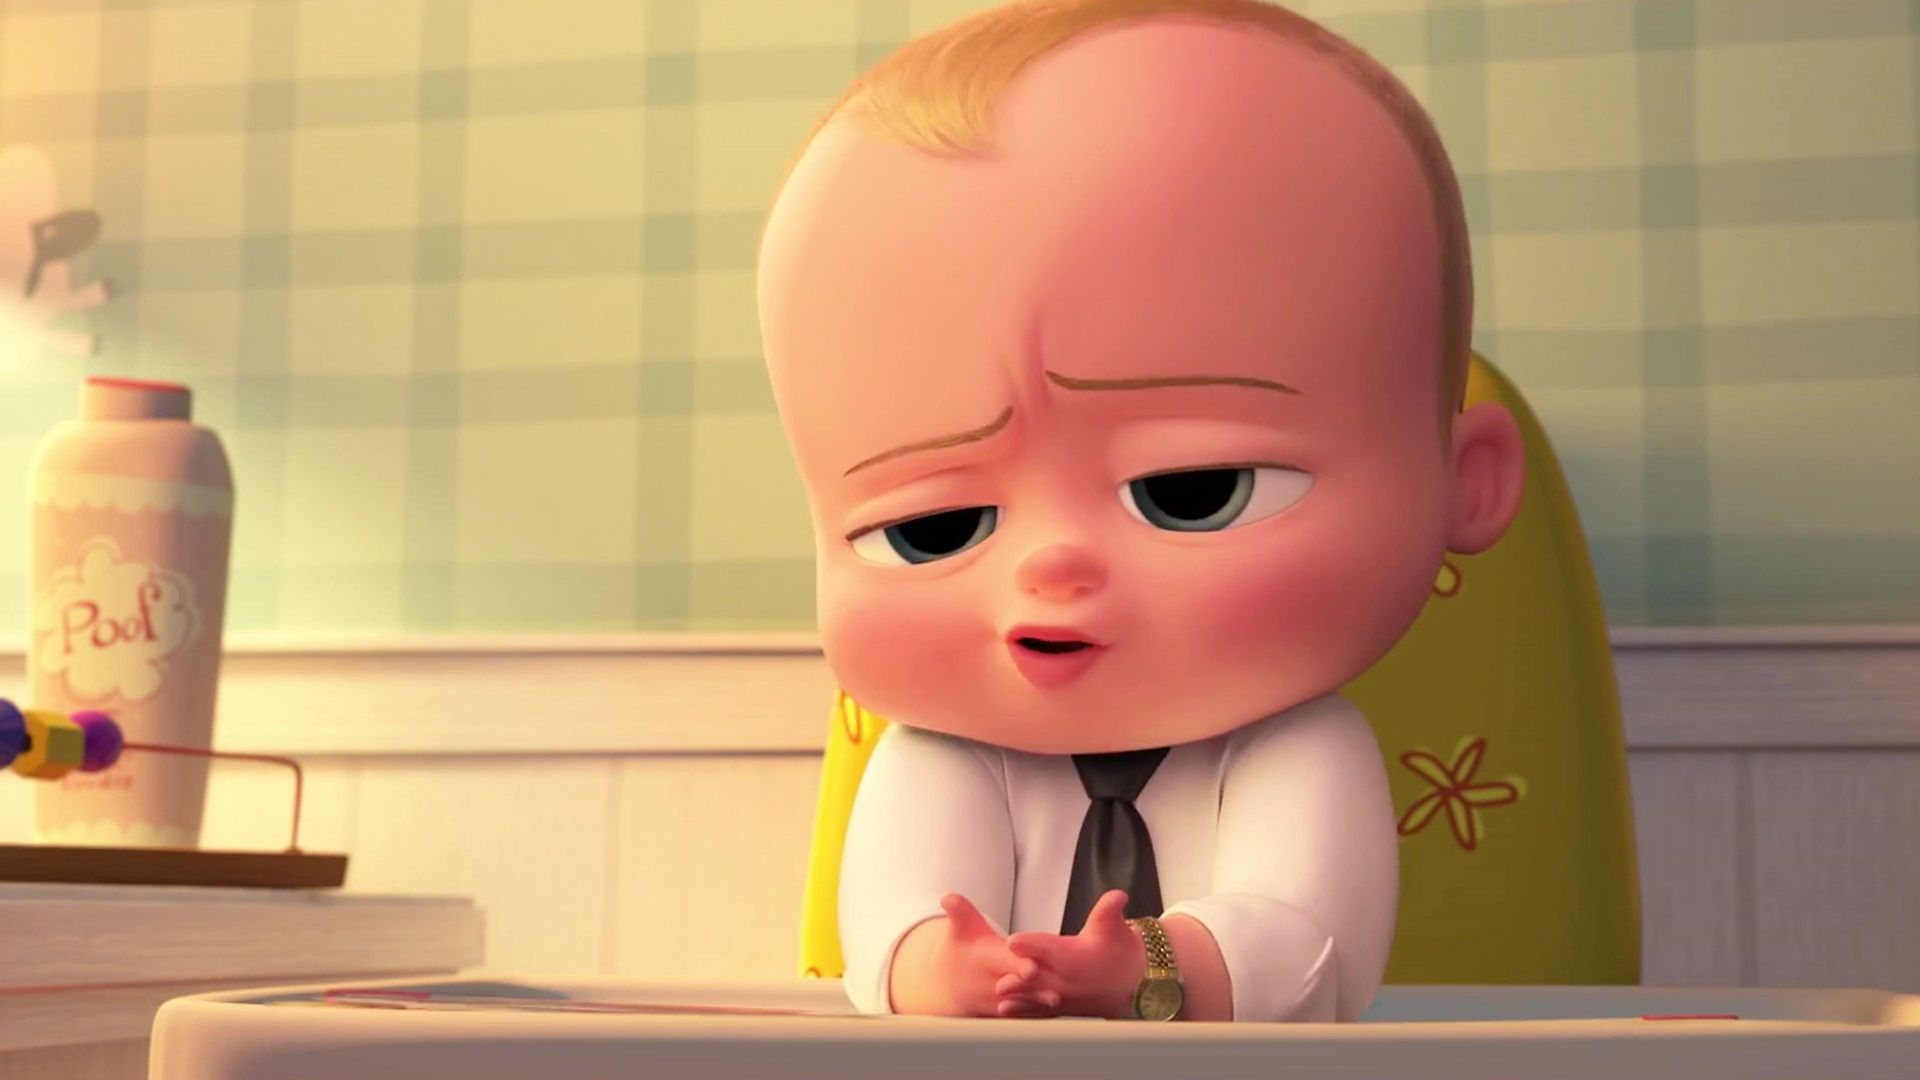 The boss baby hd wallpapers whb 8 thebossbabyhdwallpapers the boss baby hd wallpapers whb 8 thebossbabyhdwallpapers thebossbaby movies wallpapers voltagebd Choice Image